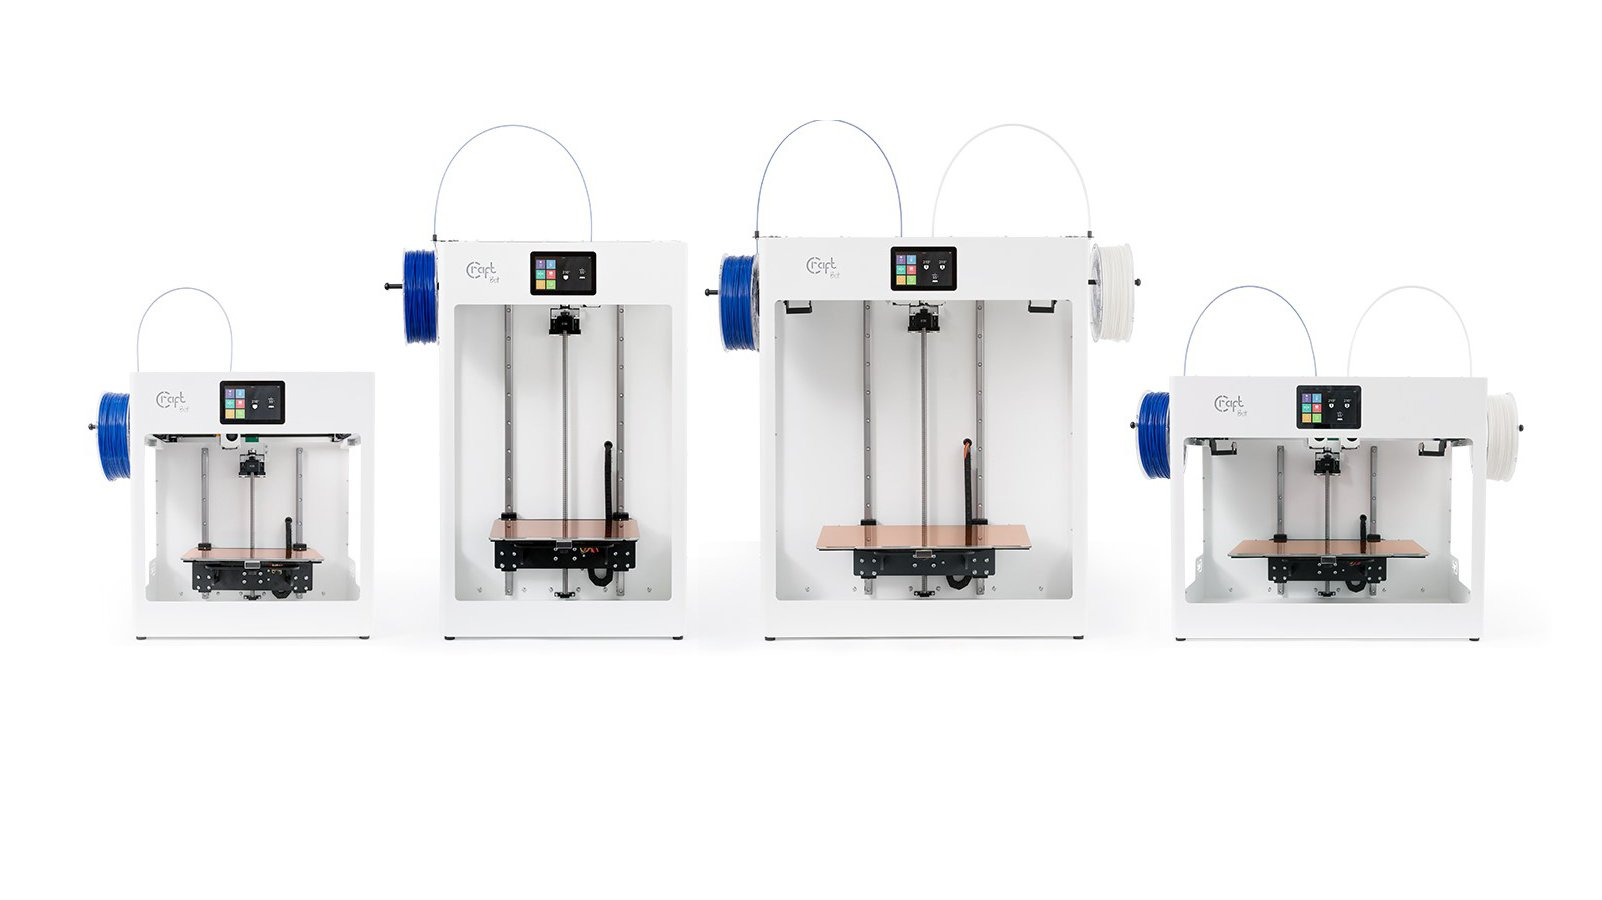 Craftbot's Supersized 3D Printer Doubles Performance and Cuts Printing Time | All3DP